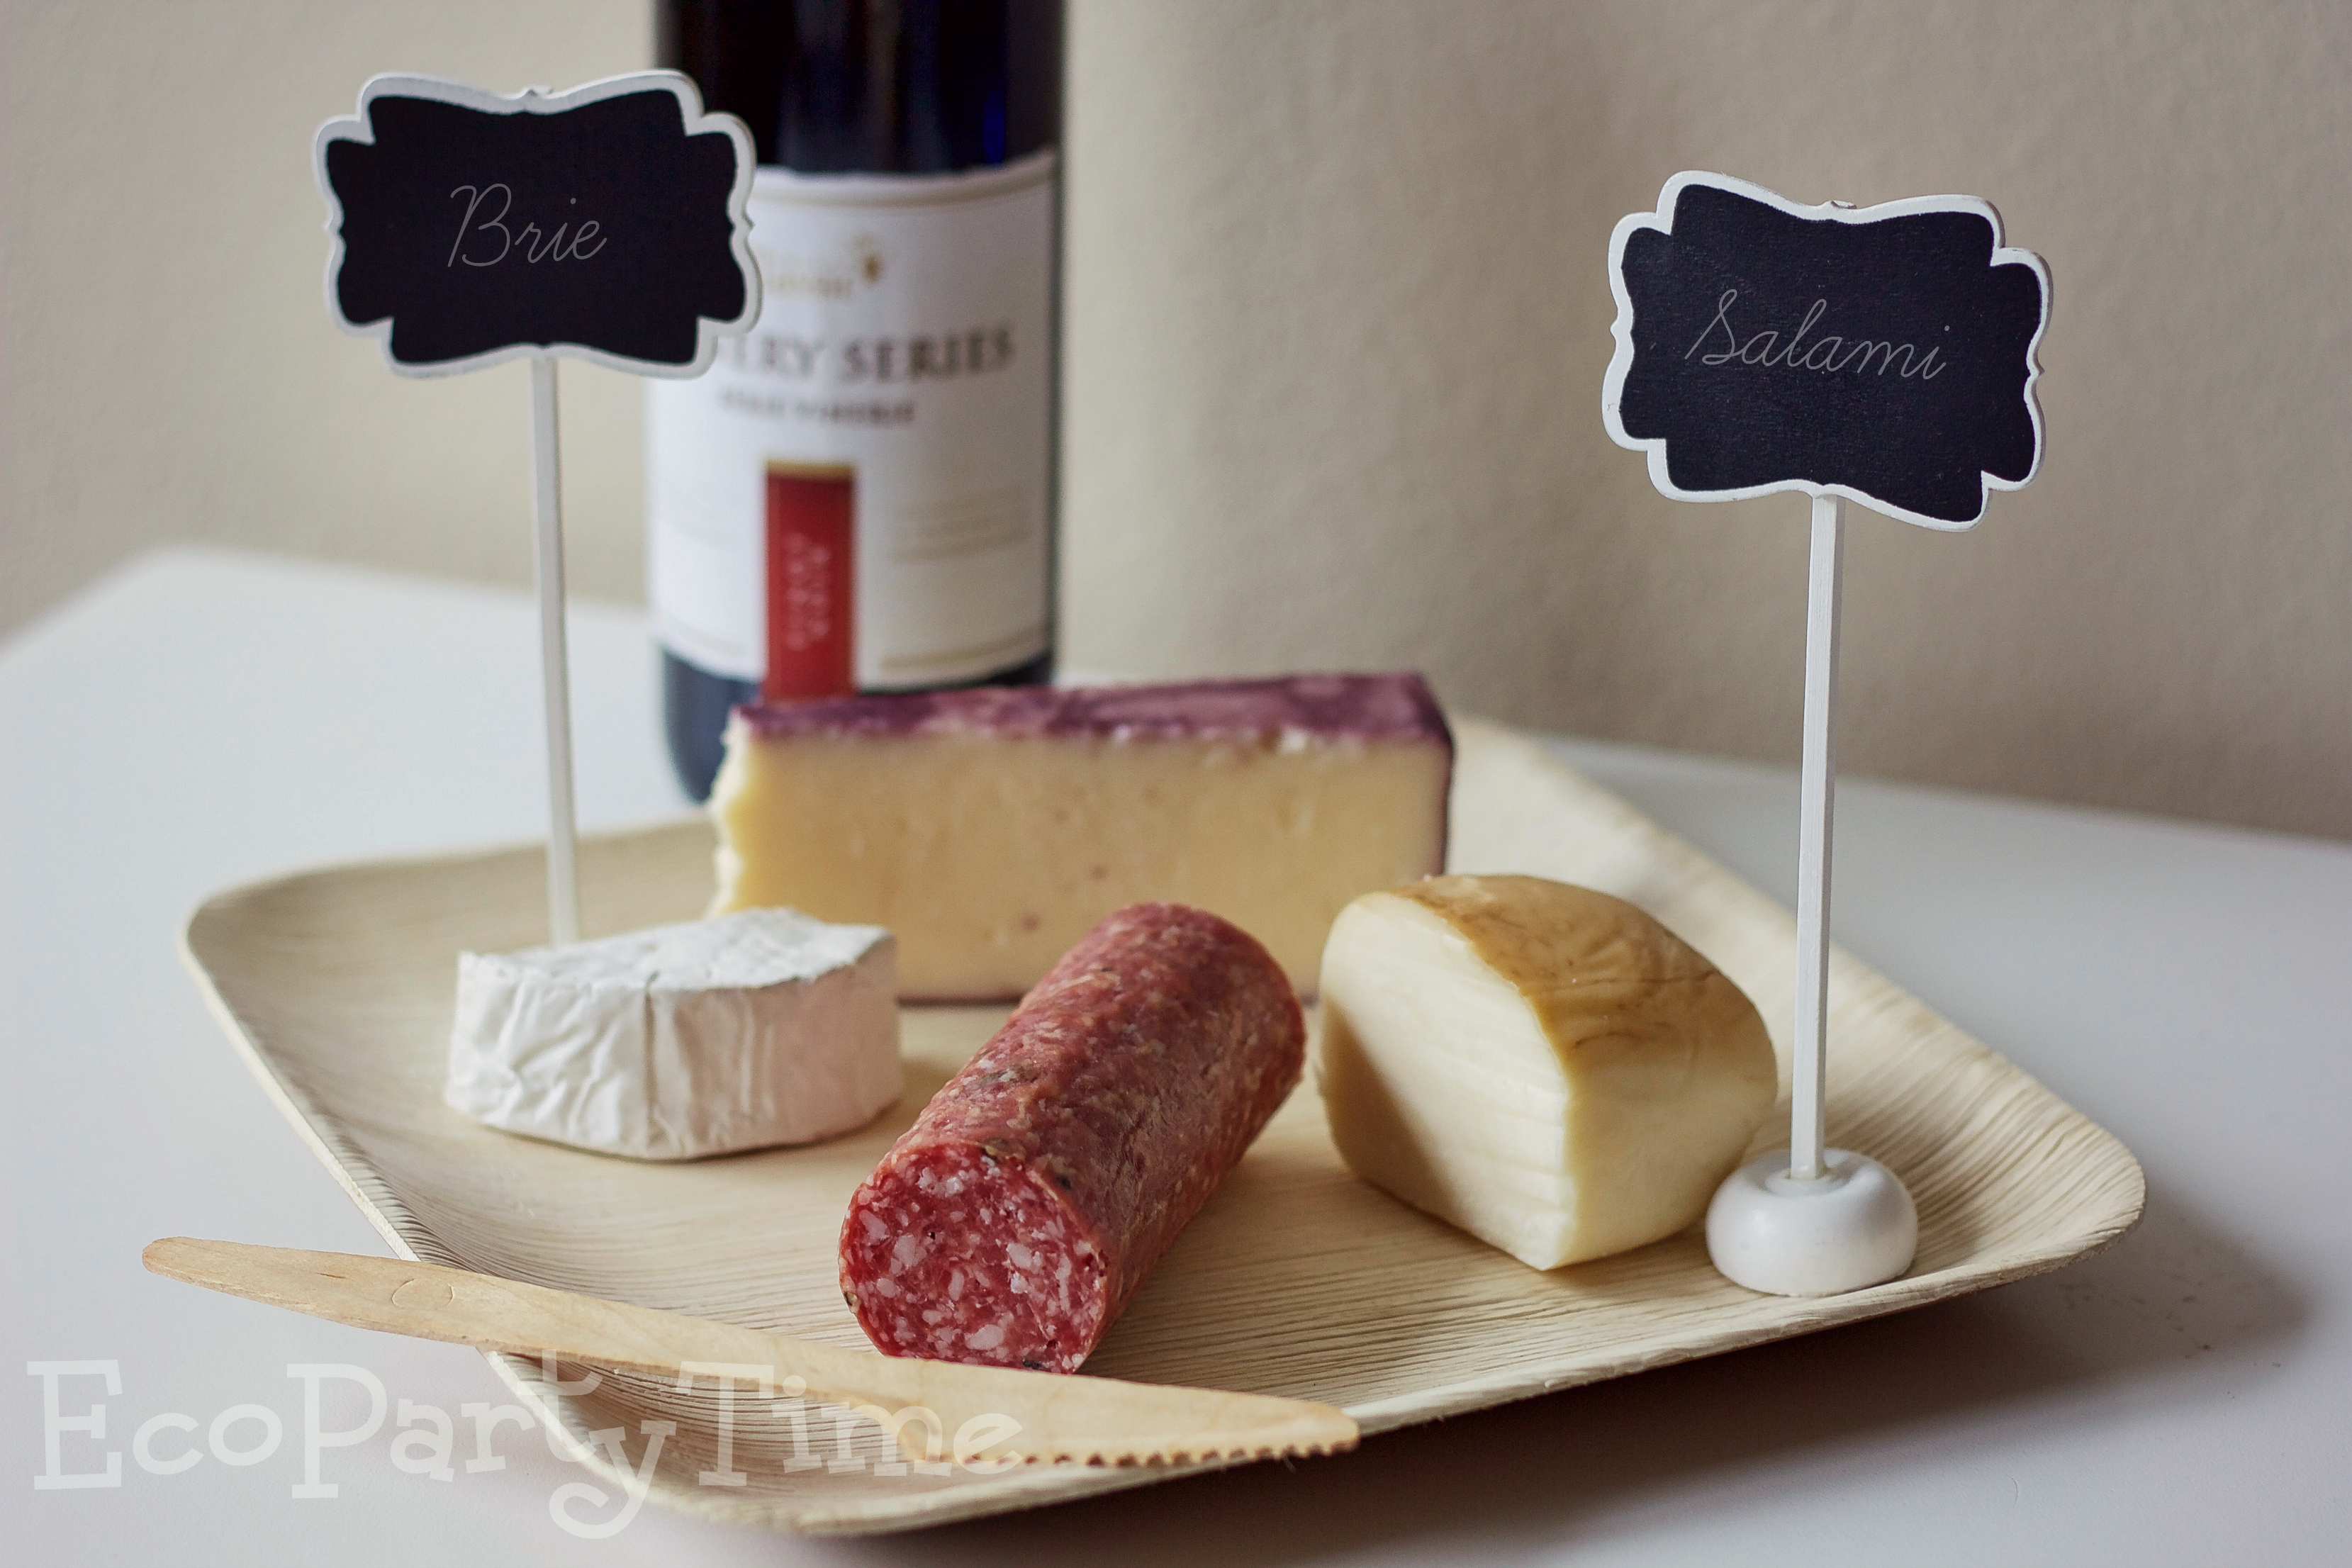 Ecopartytime: Eco-Friendly Wine & Cheese Night